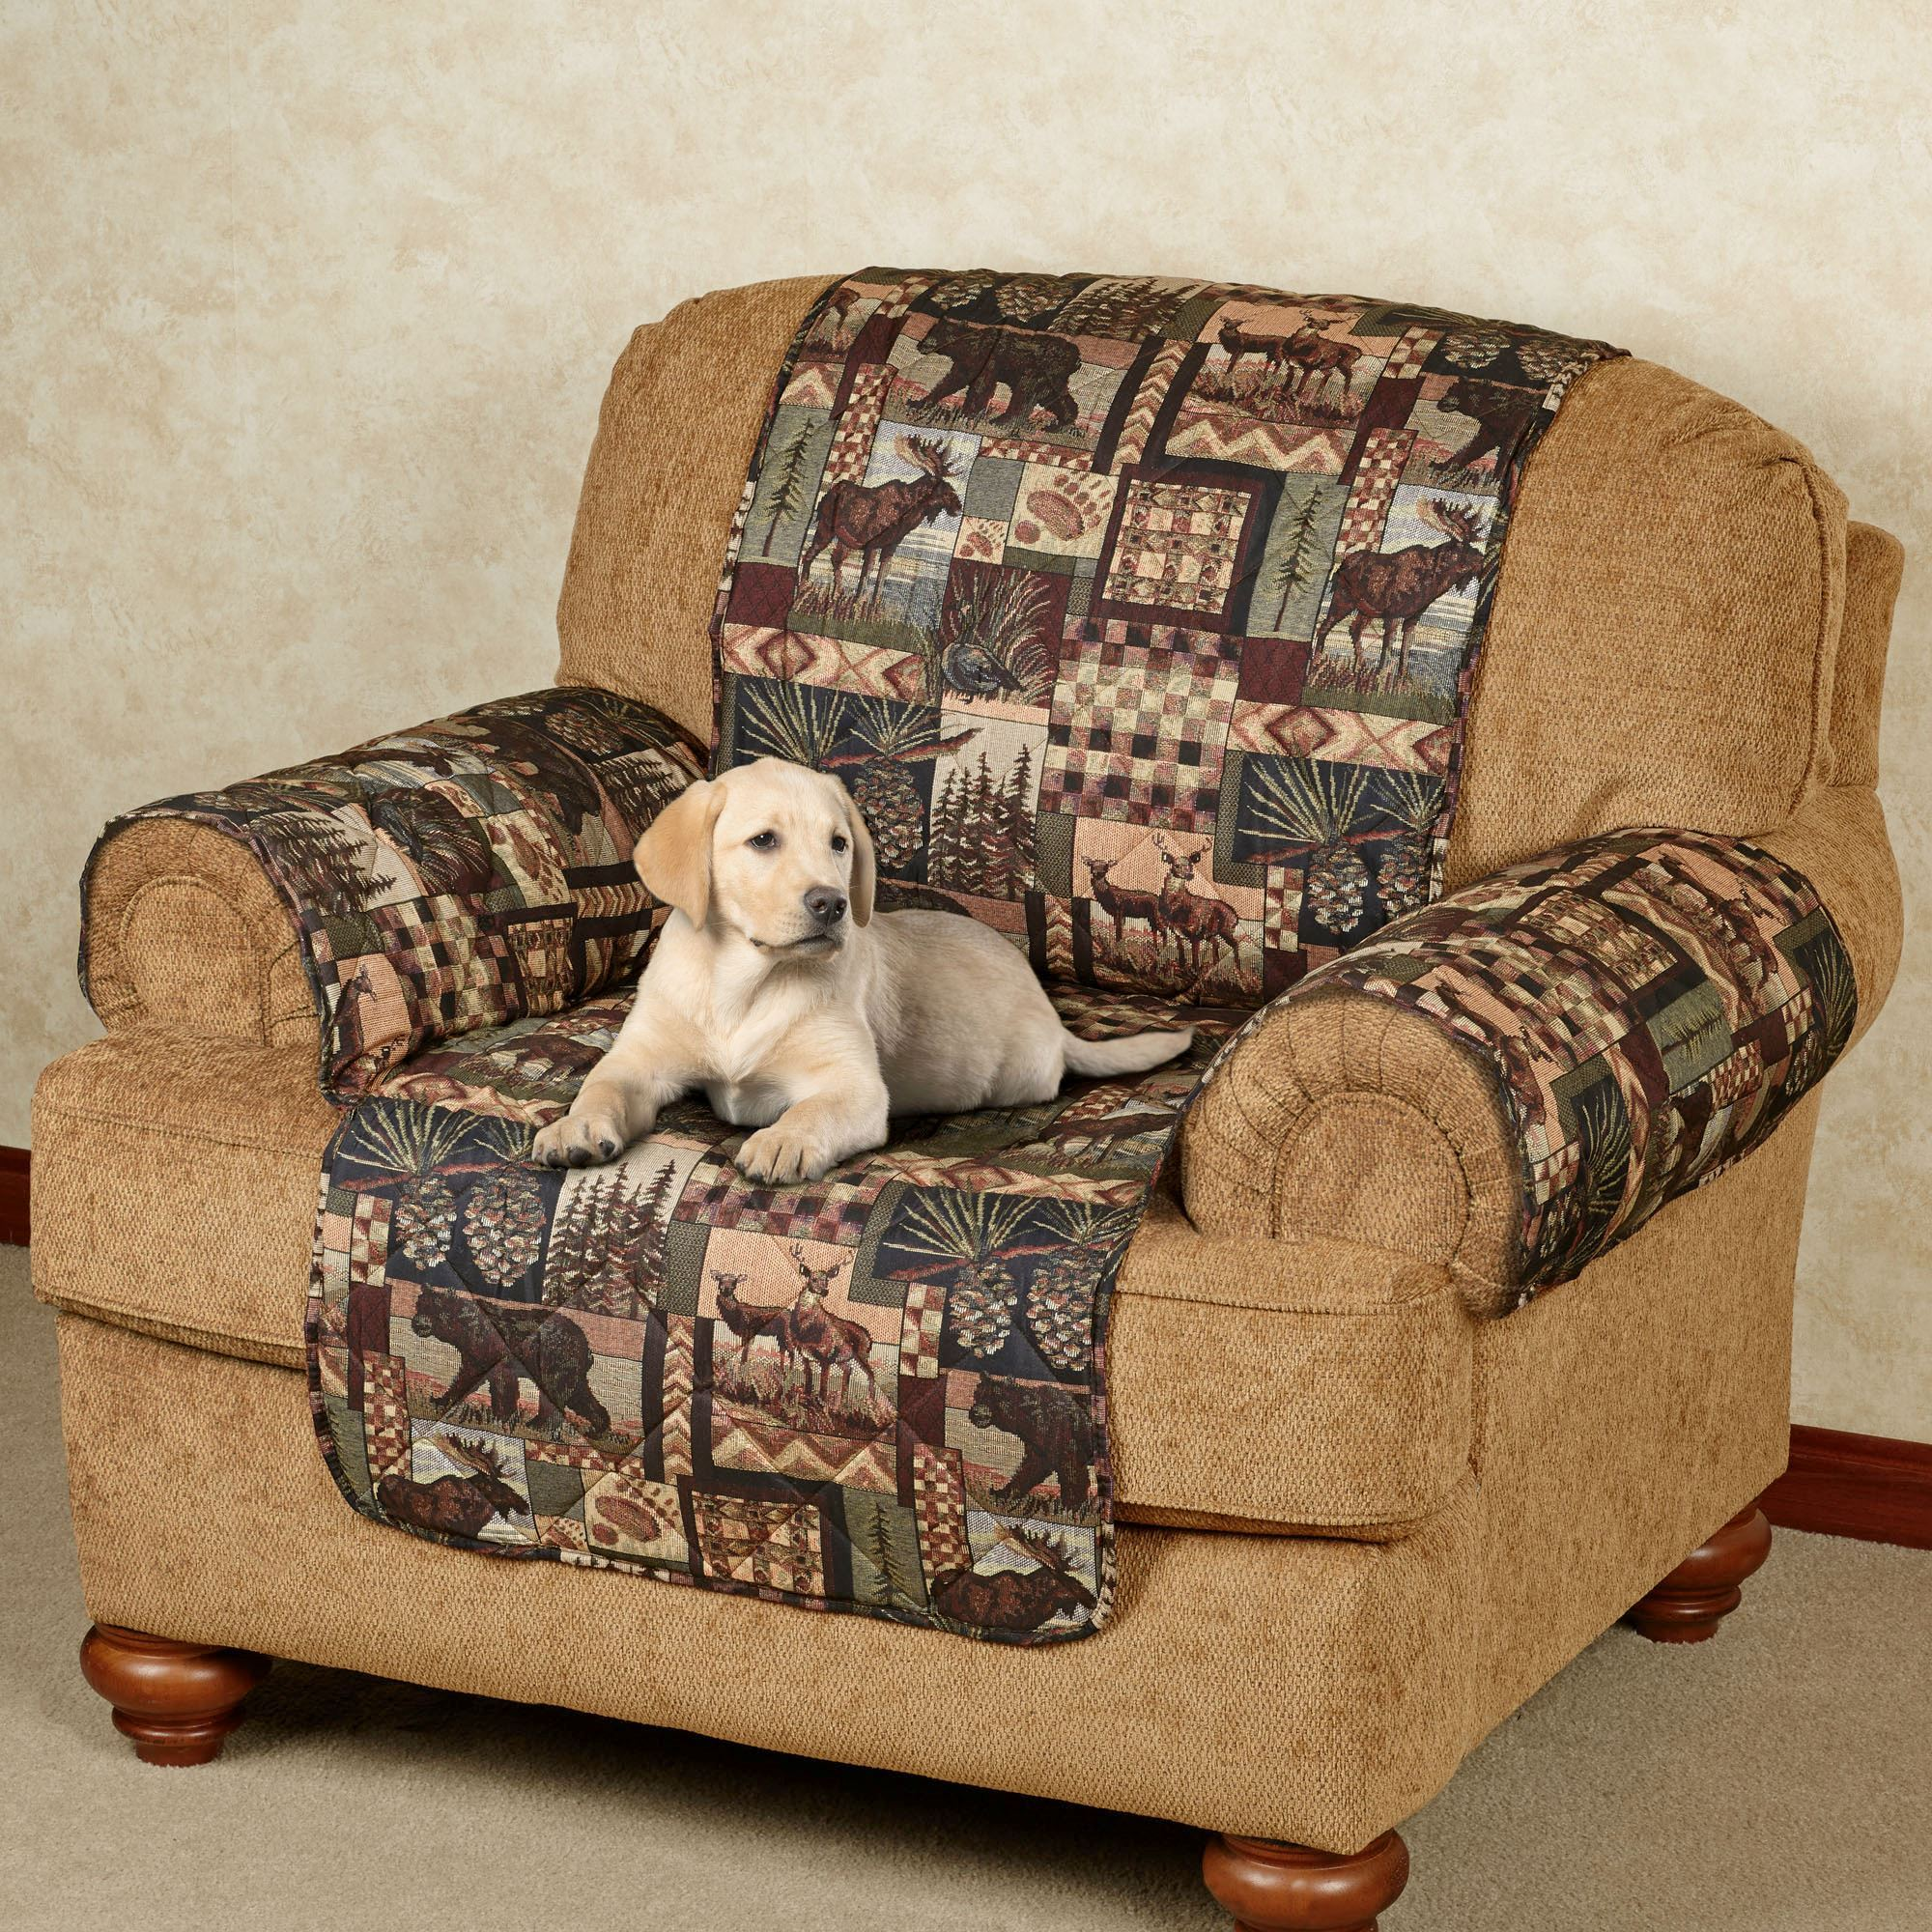 Admirable Lodge Quilted Microfiber Pet Furniture Covers Inzonedesignstudio Interior Chair Design Inzonedesignstudiocom